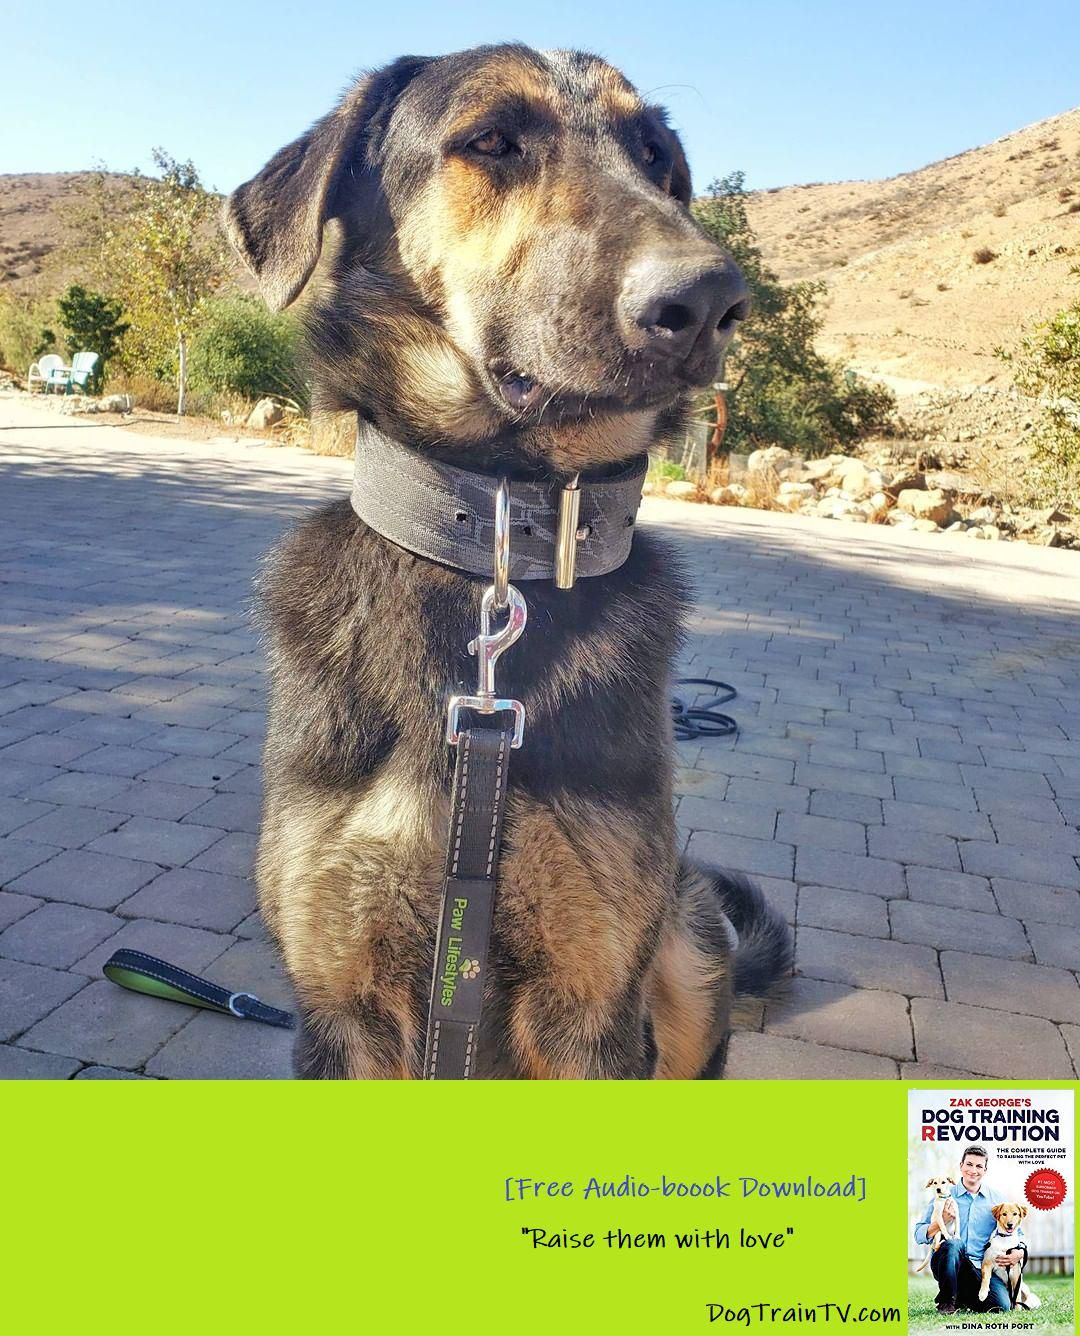 Kylo Ren Is Working On His Confidence Visit Happydogtraining Info To Take Your Dog To